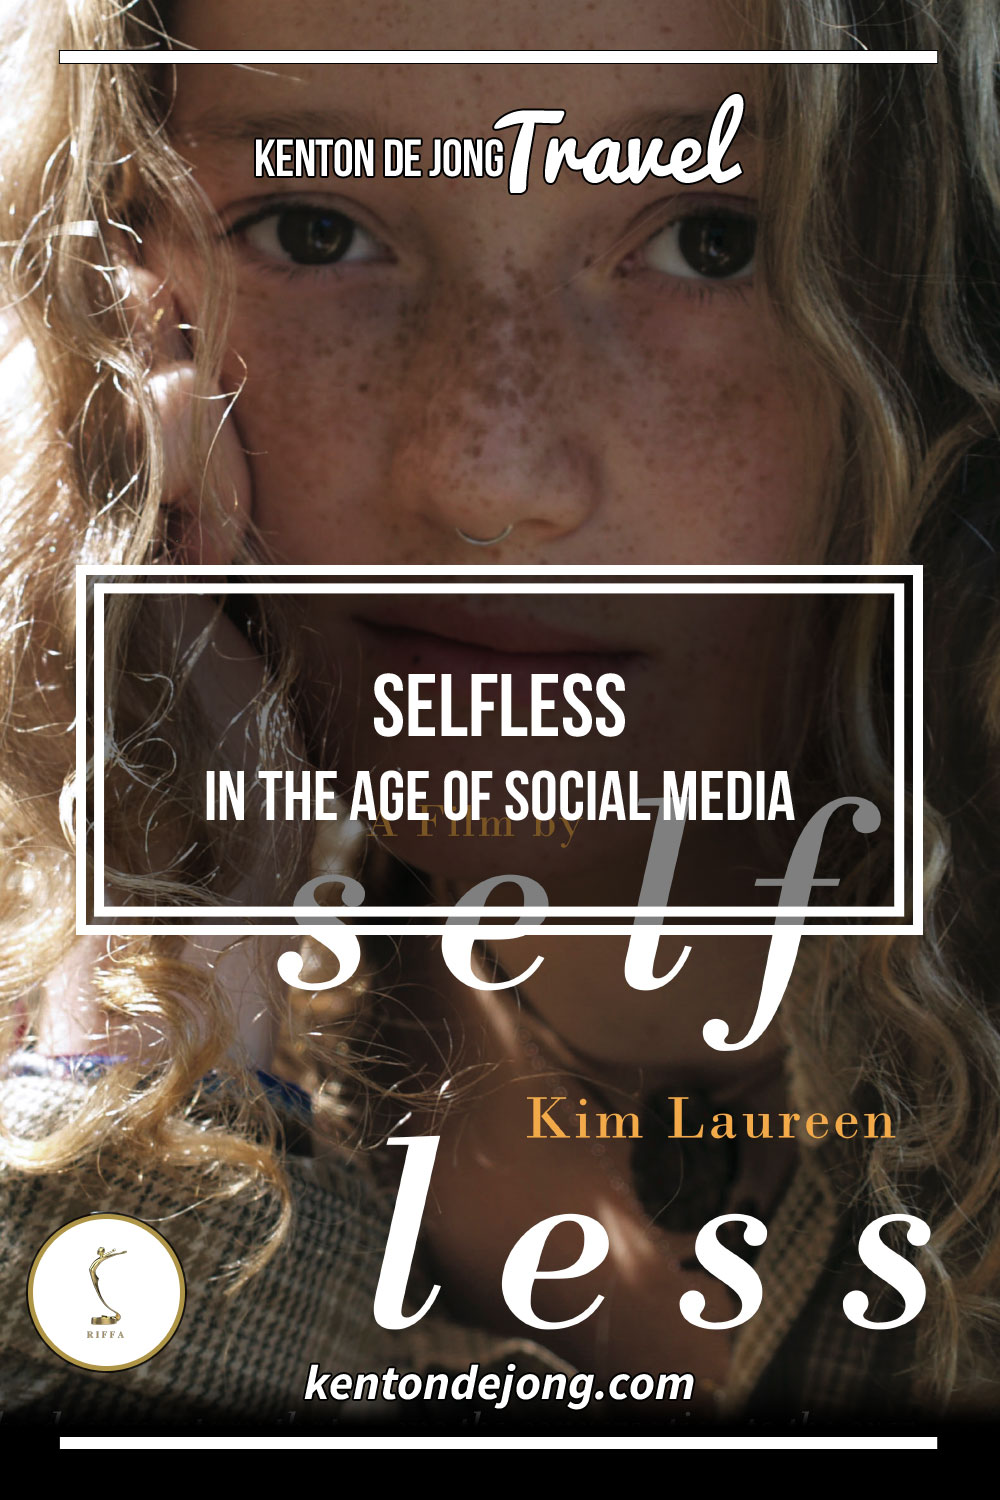 selfless in the Age of Social Media